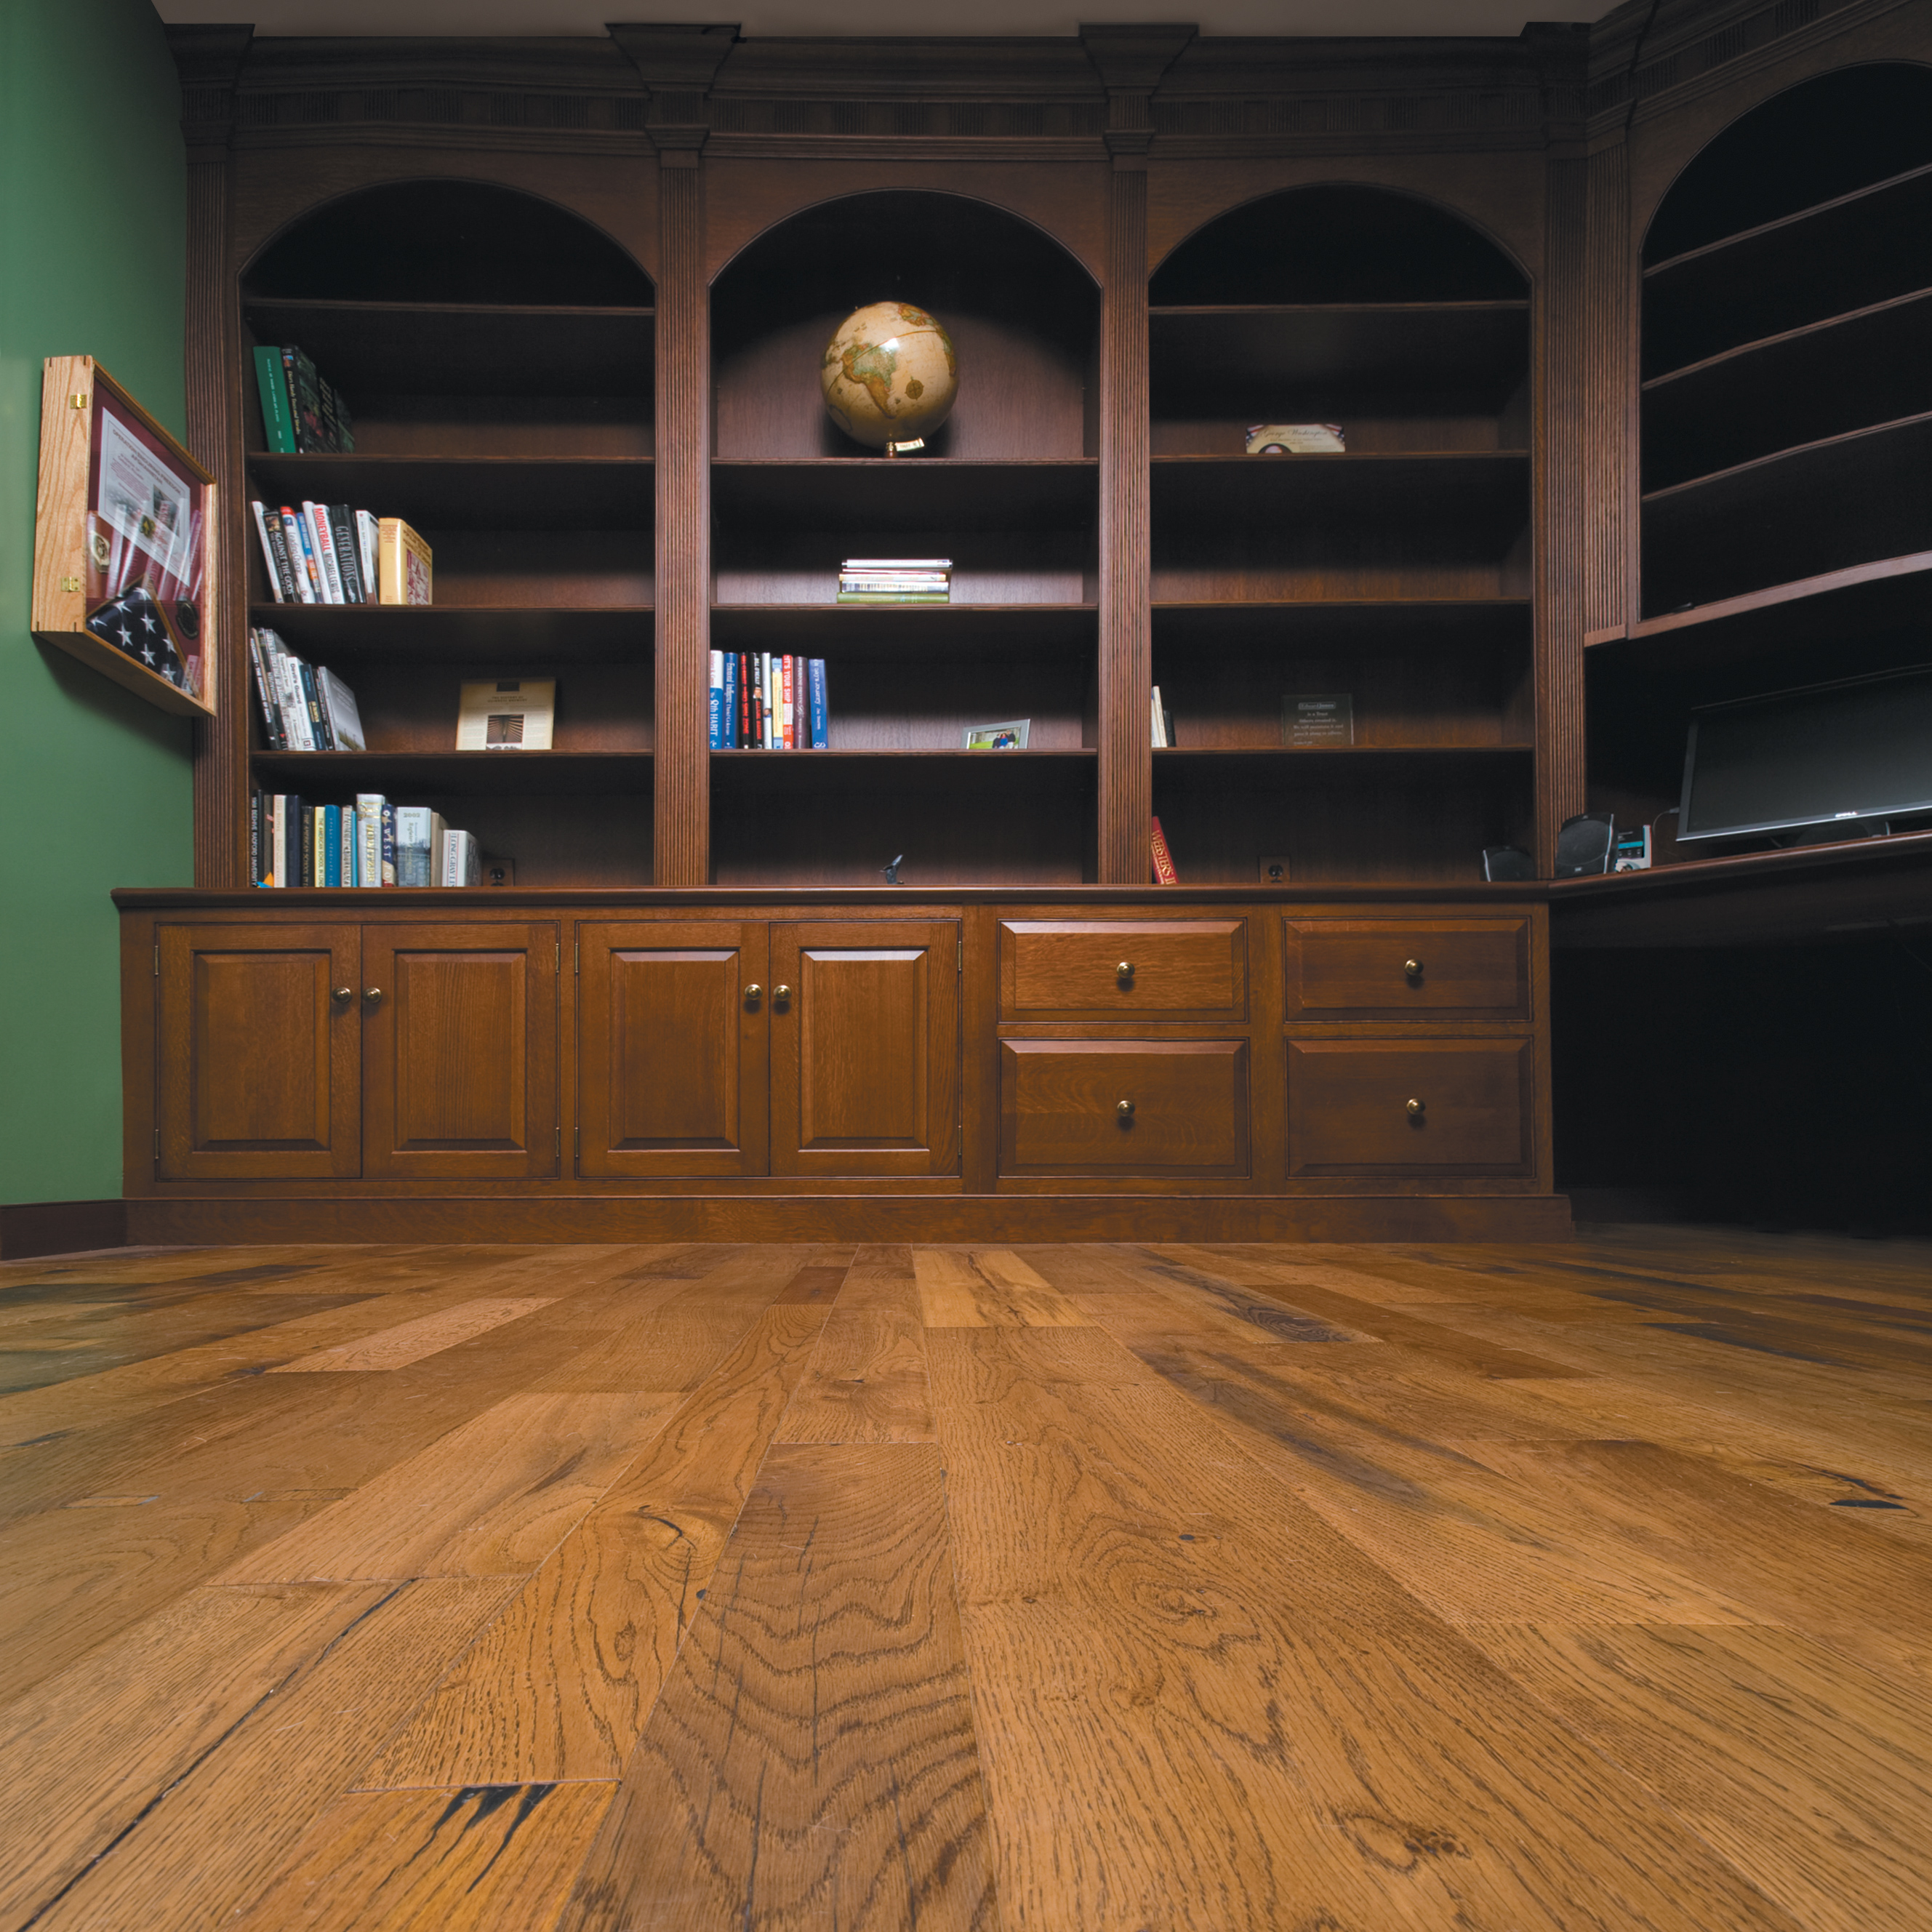 reclaimed antique oak flooring from the guinness brewery's brewing vats